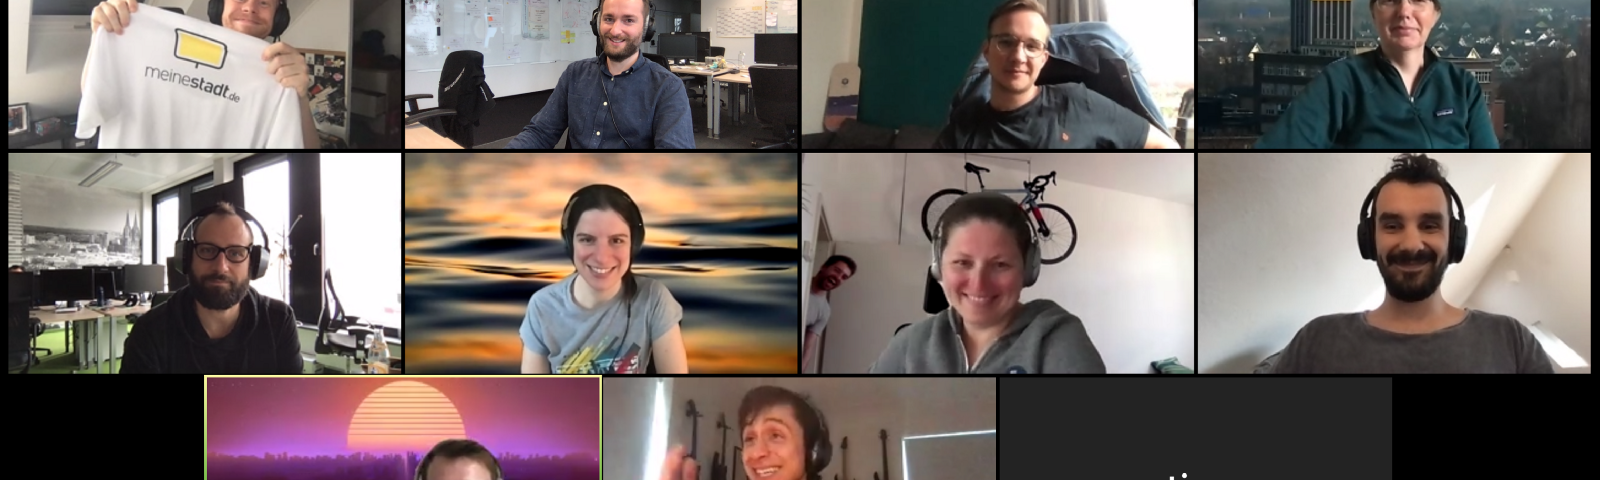 The members of the frontend optimization board (FOB) meeting virtually for one of their meetings, posing for a group picture